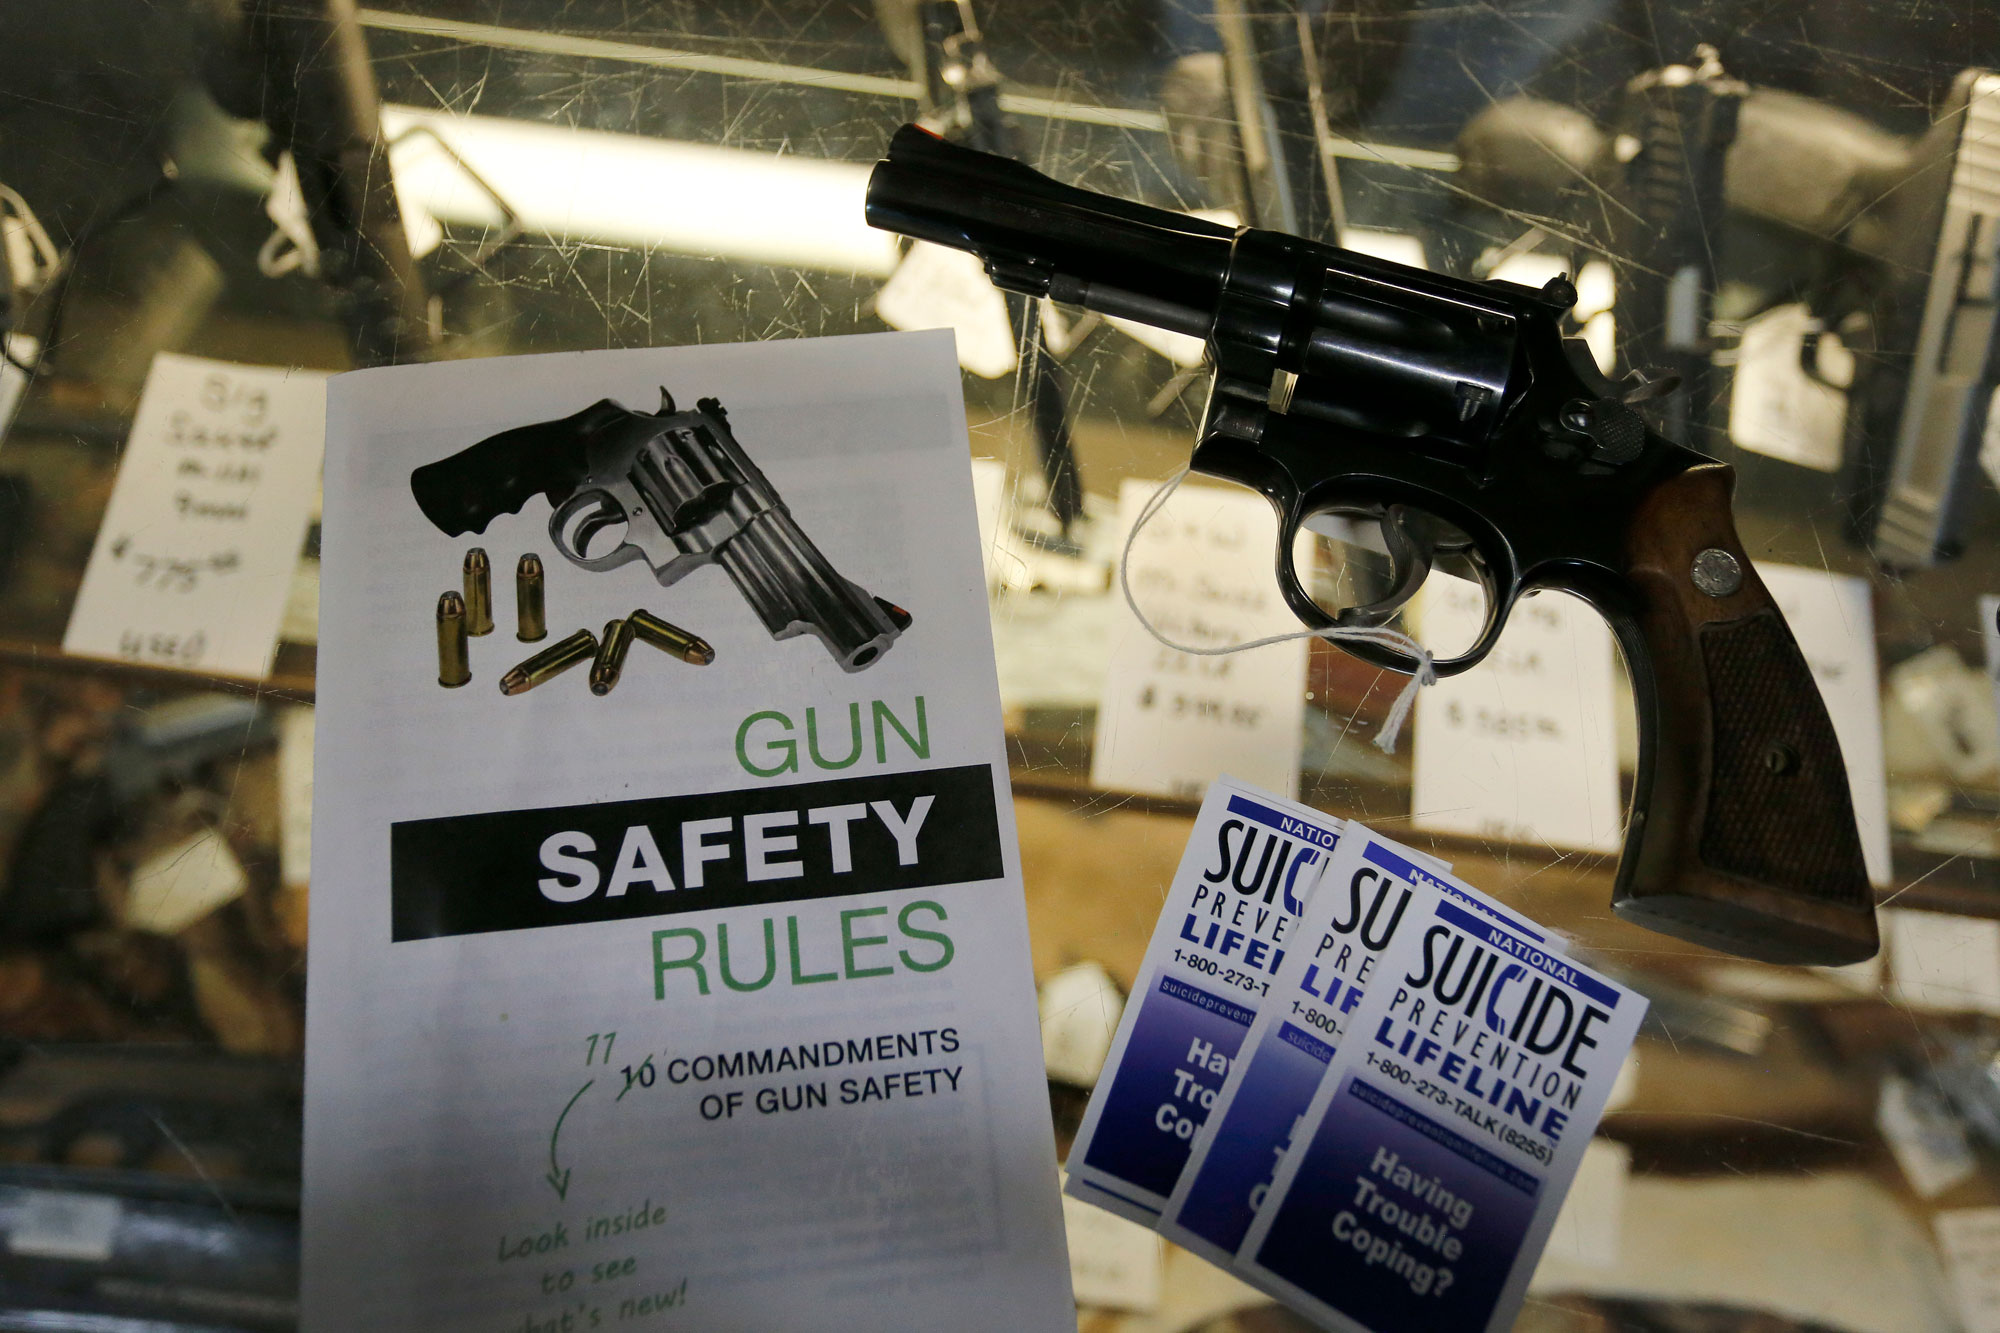 In this Feb. 23, 2016 photo, gun safety and suicide prevention brochures on display next to guns for sale at a local retail gun store in Montrose, Colo.